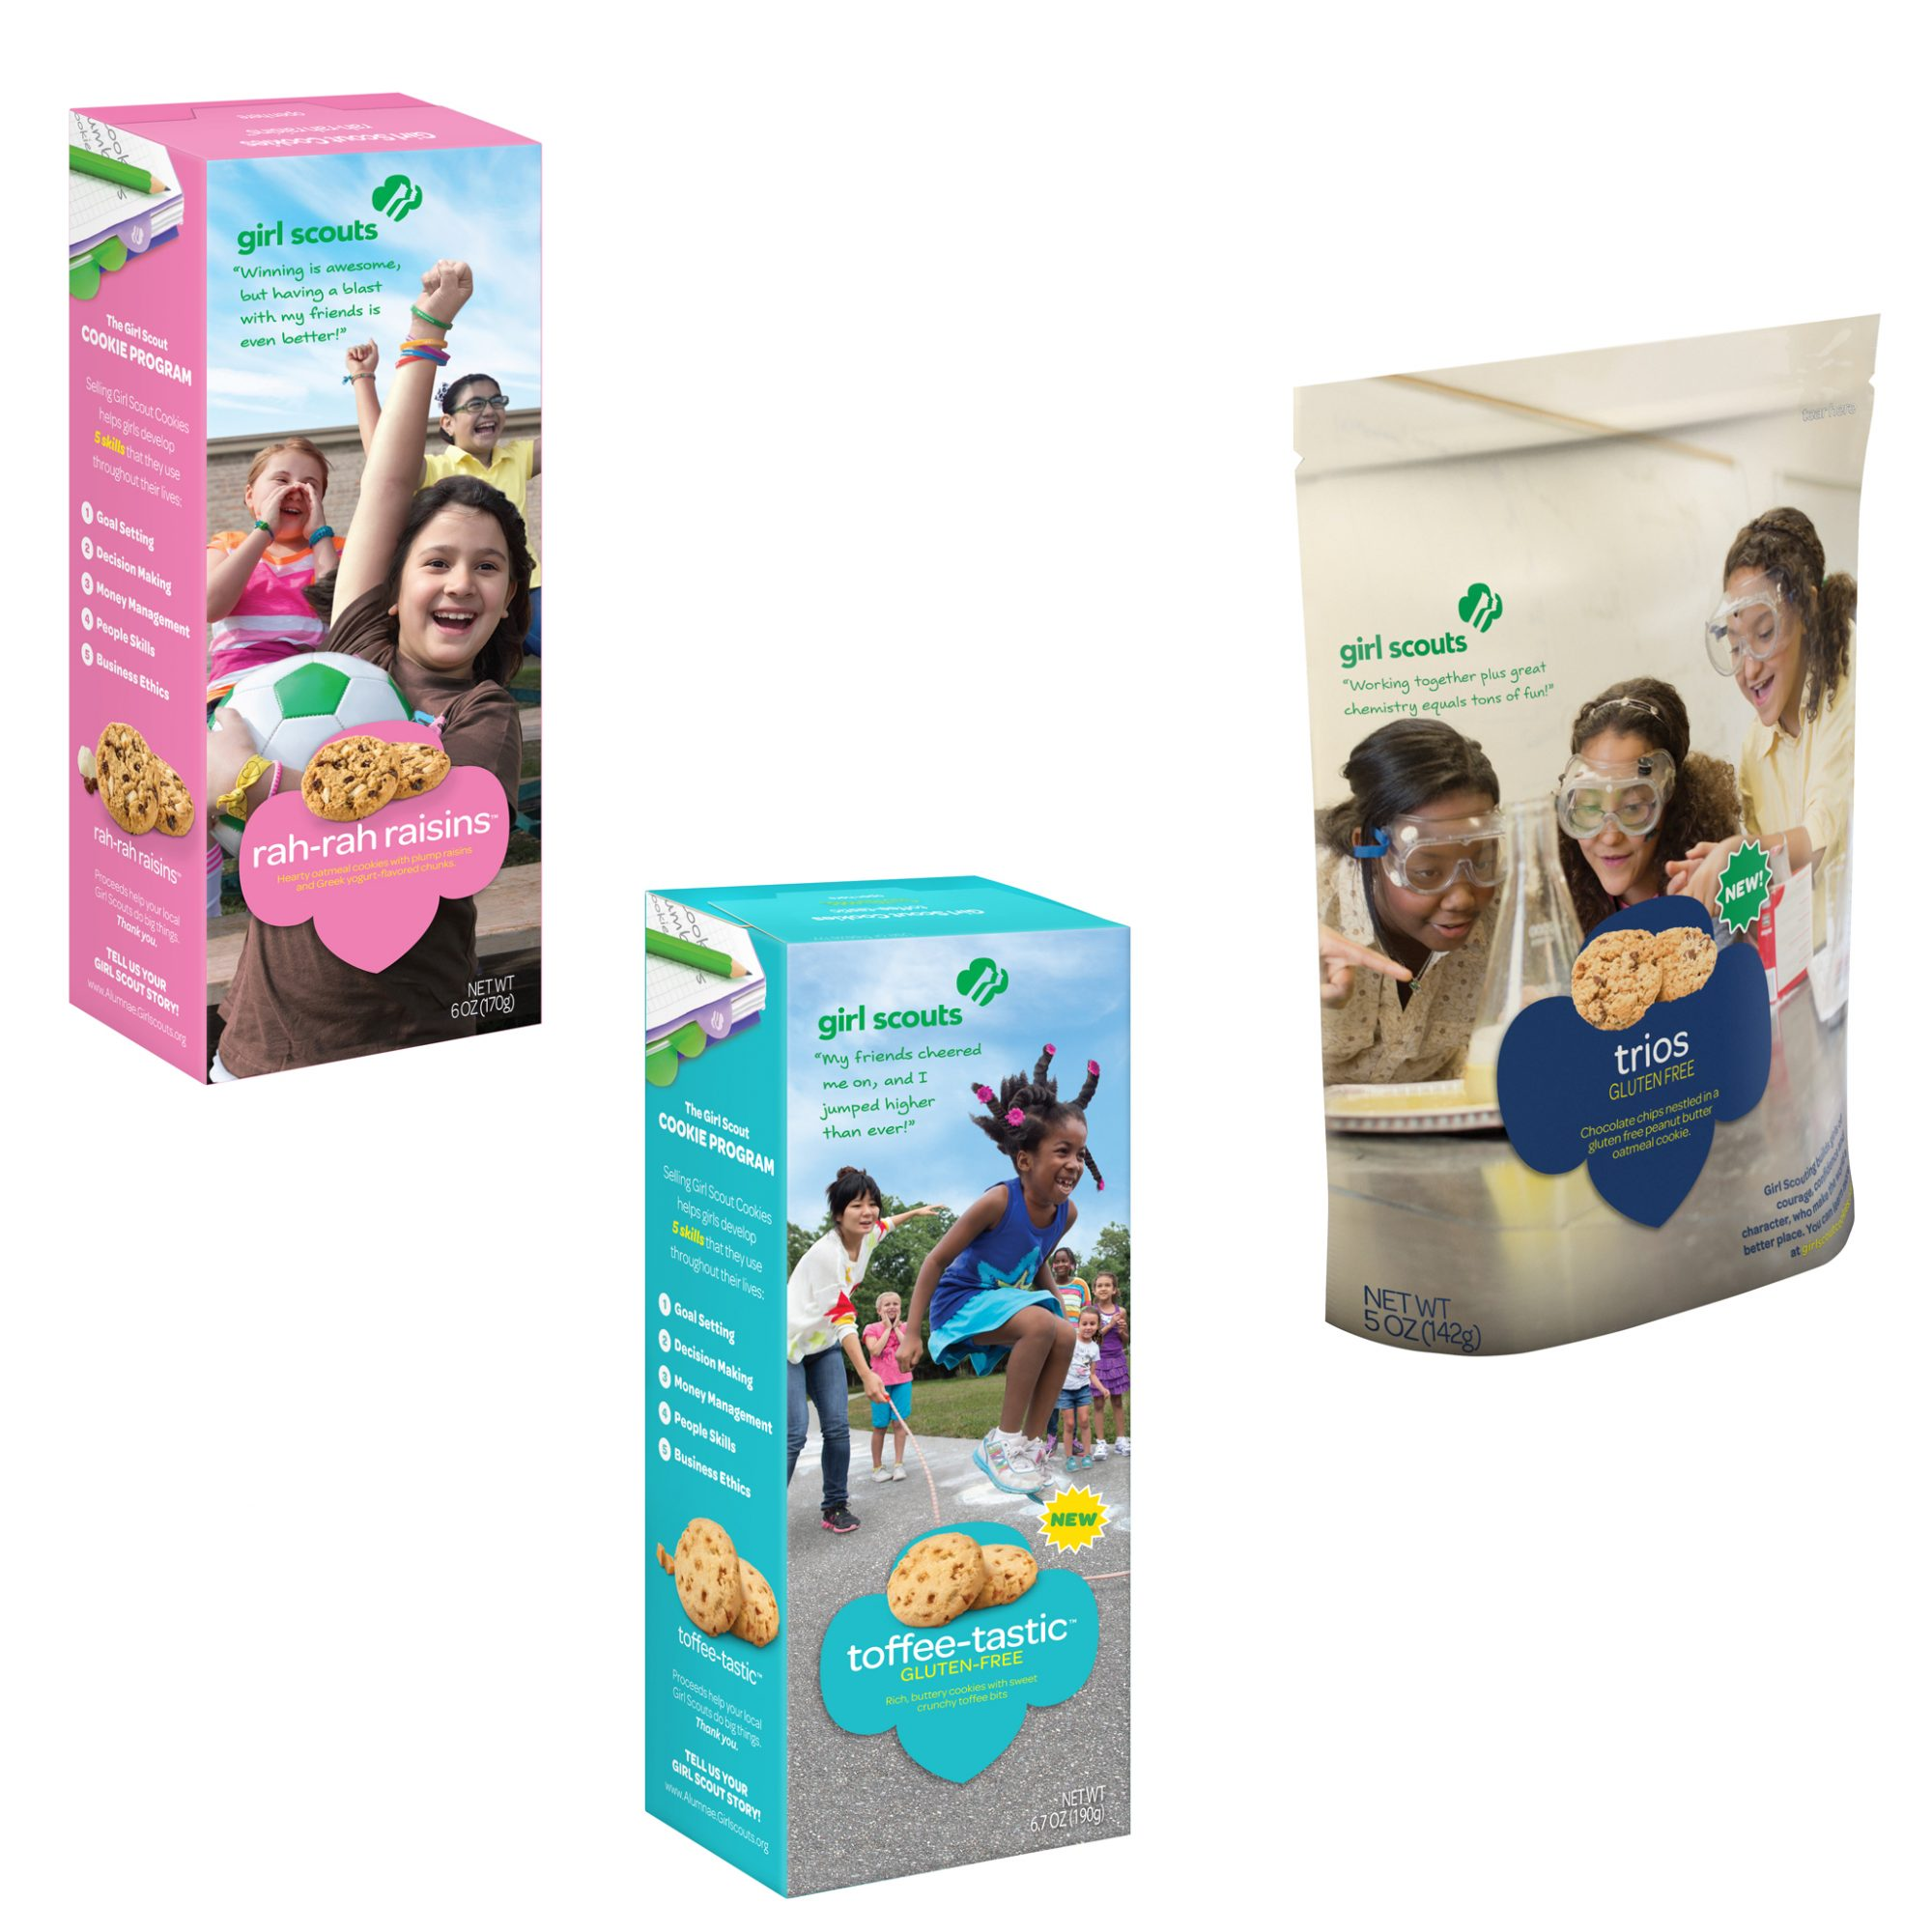 Girl Scouts Cater to Food Trends with New Gluten–Free Cookies